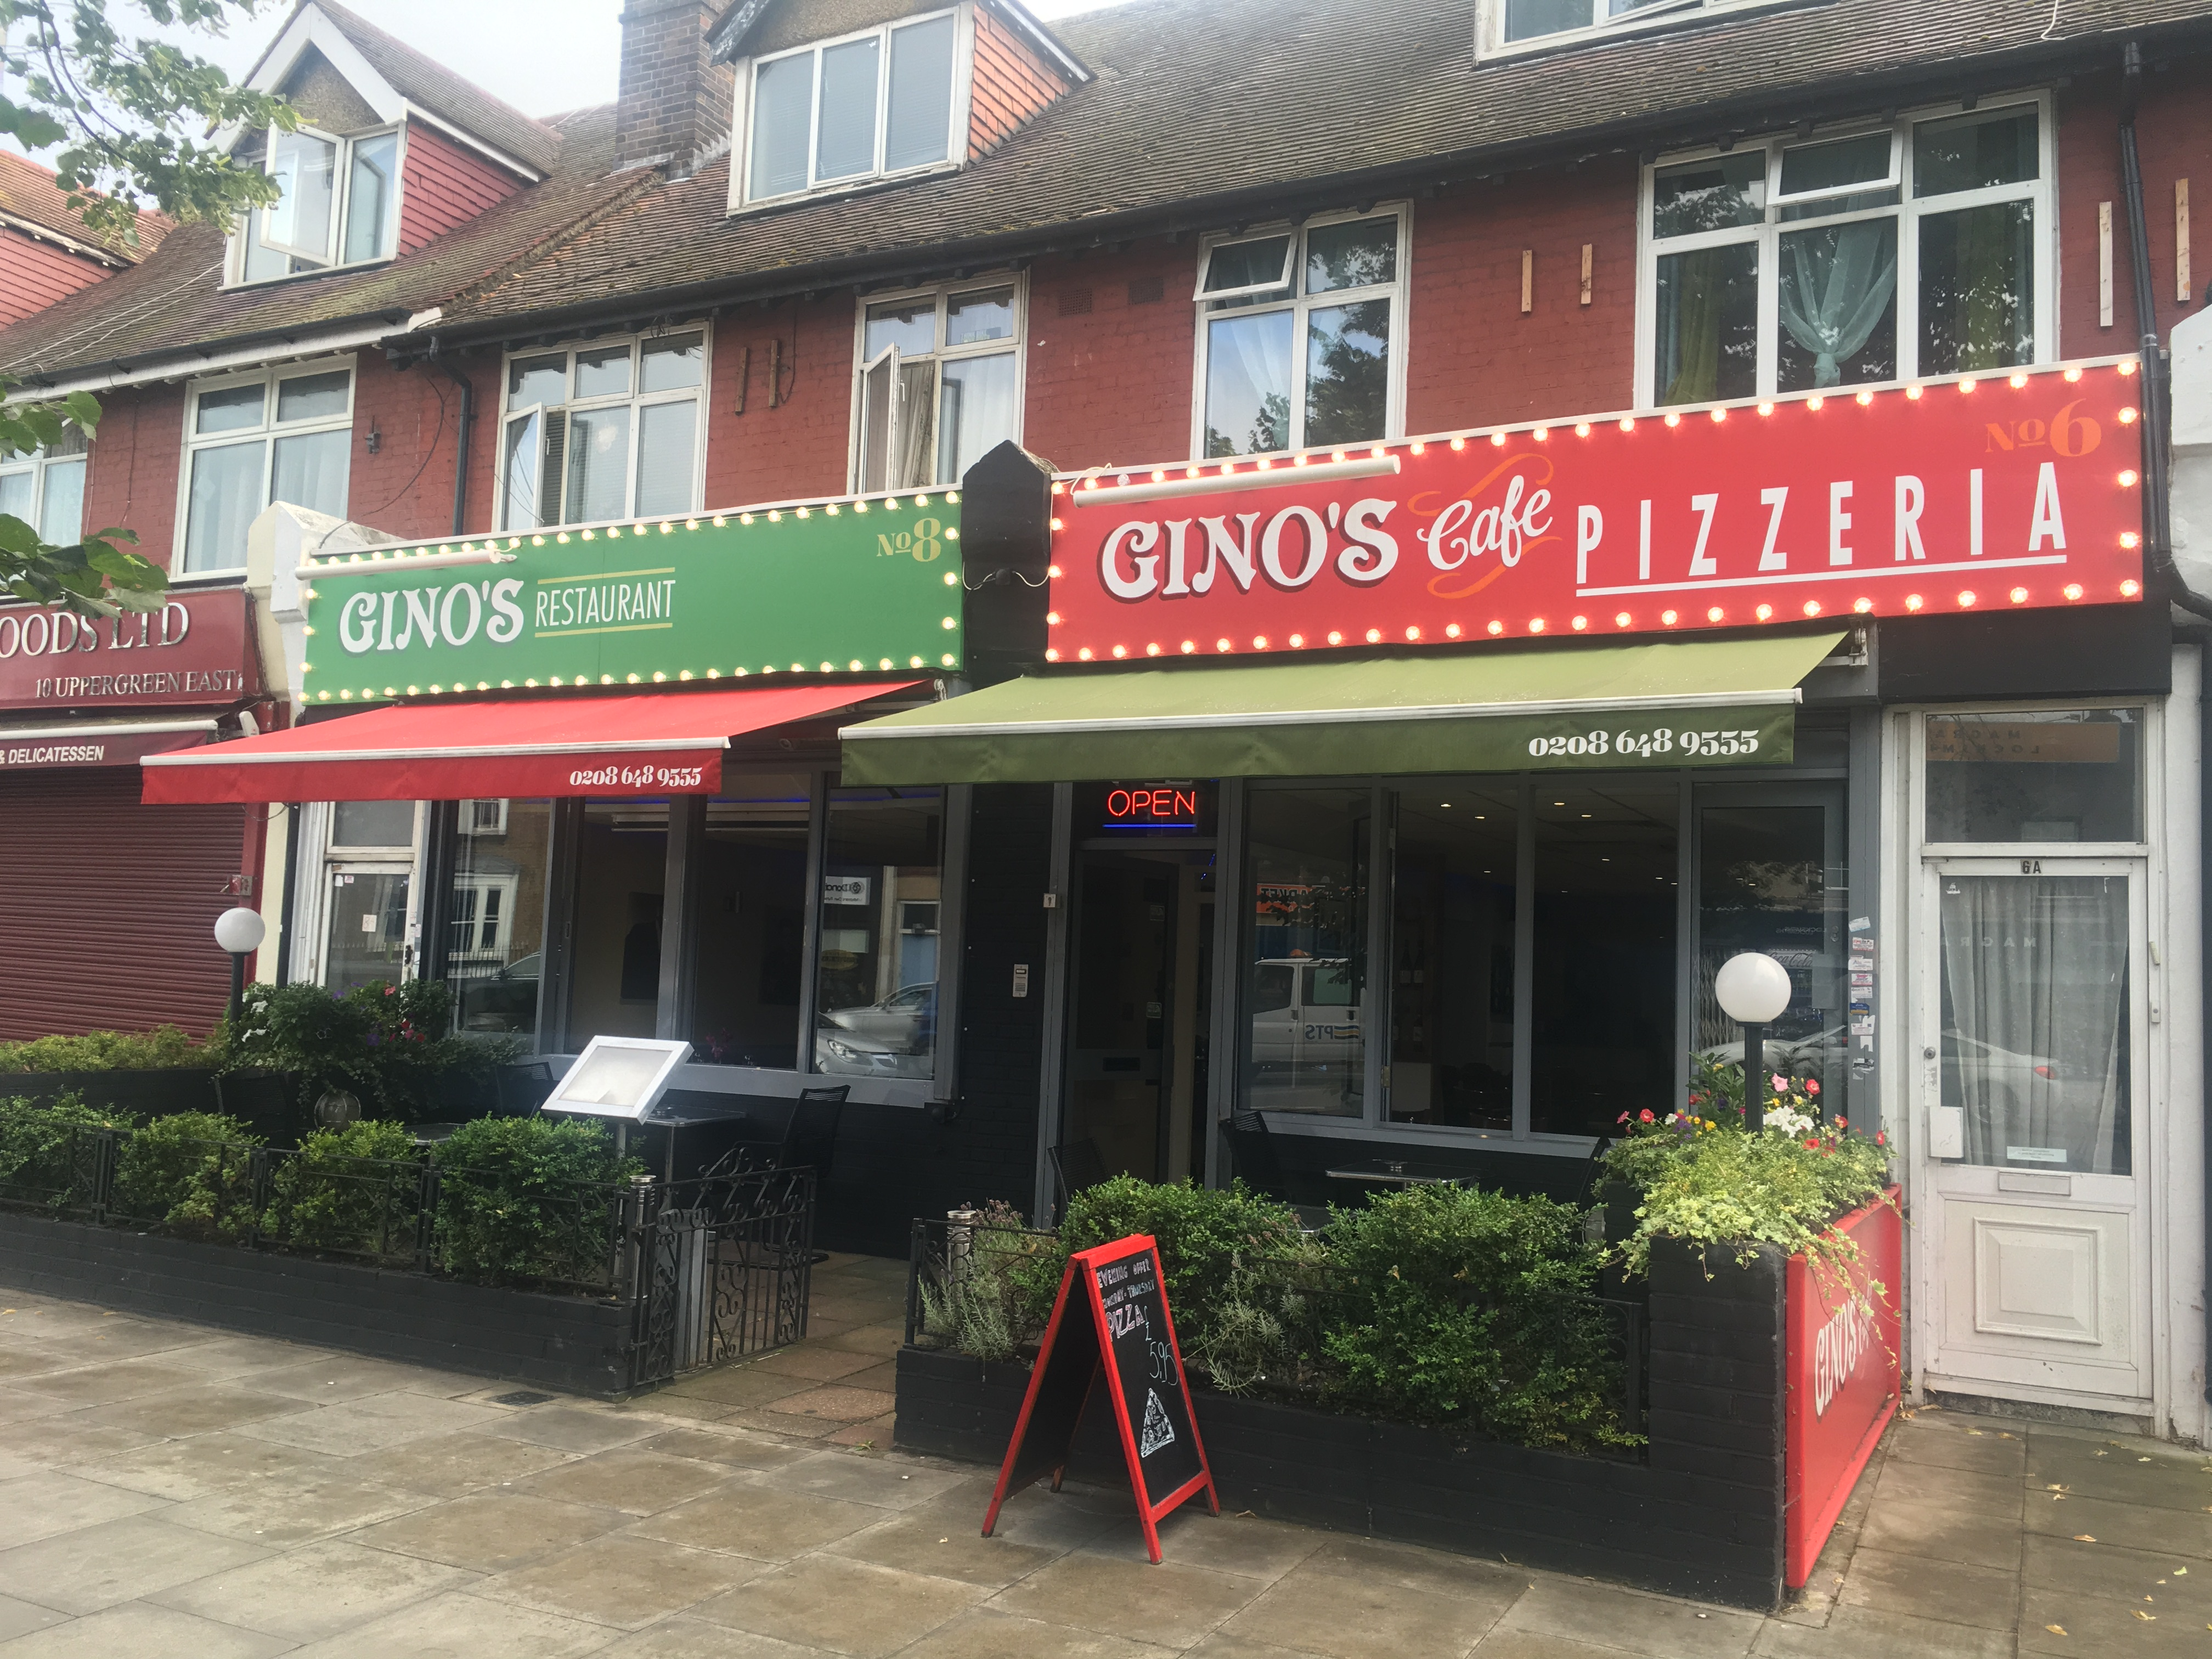 Gino's restaurant and pizzeria in Micham - image